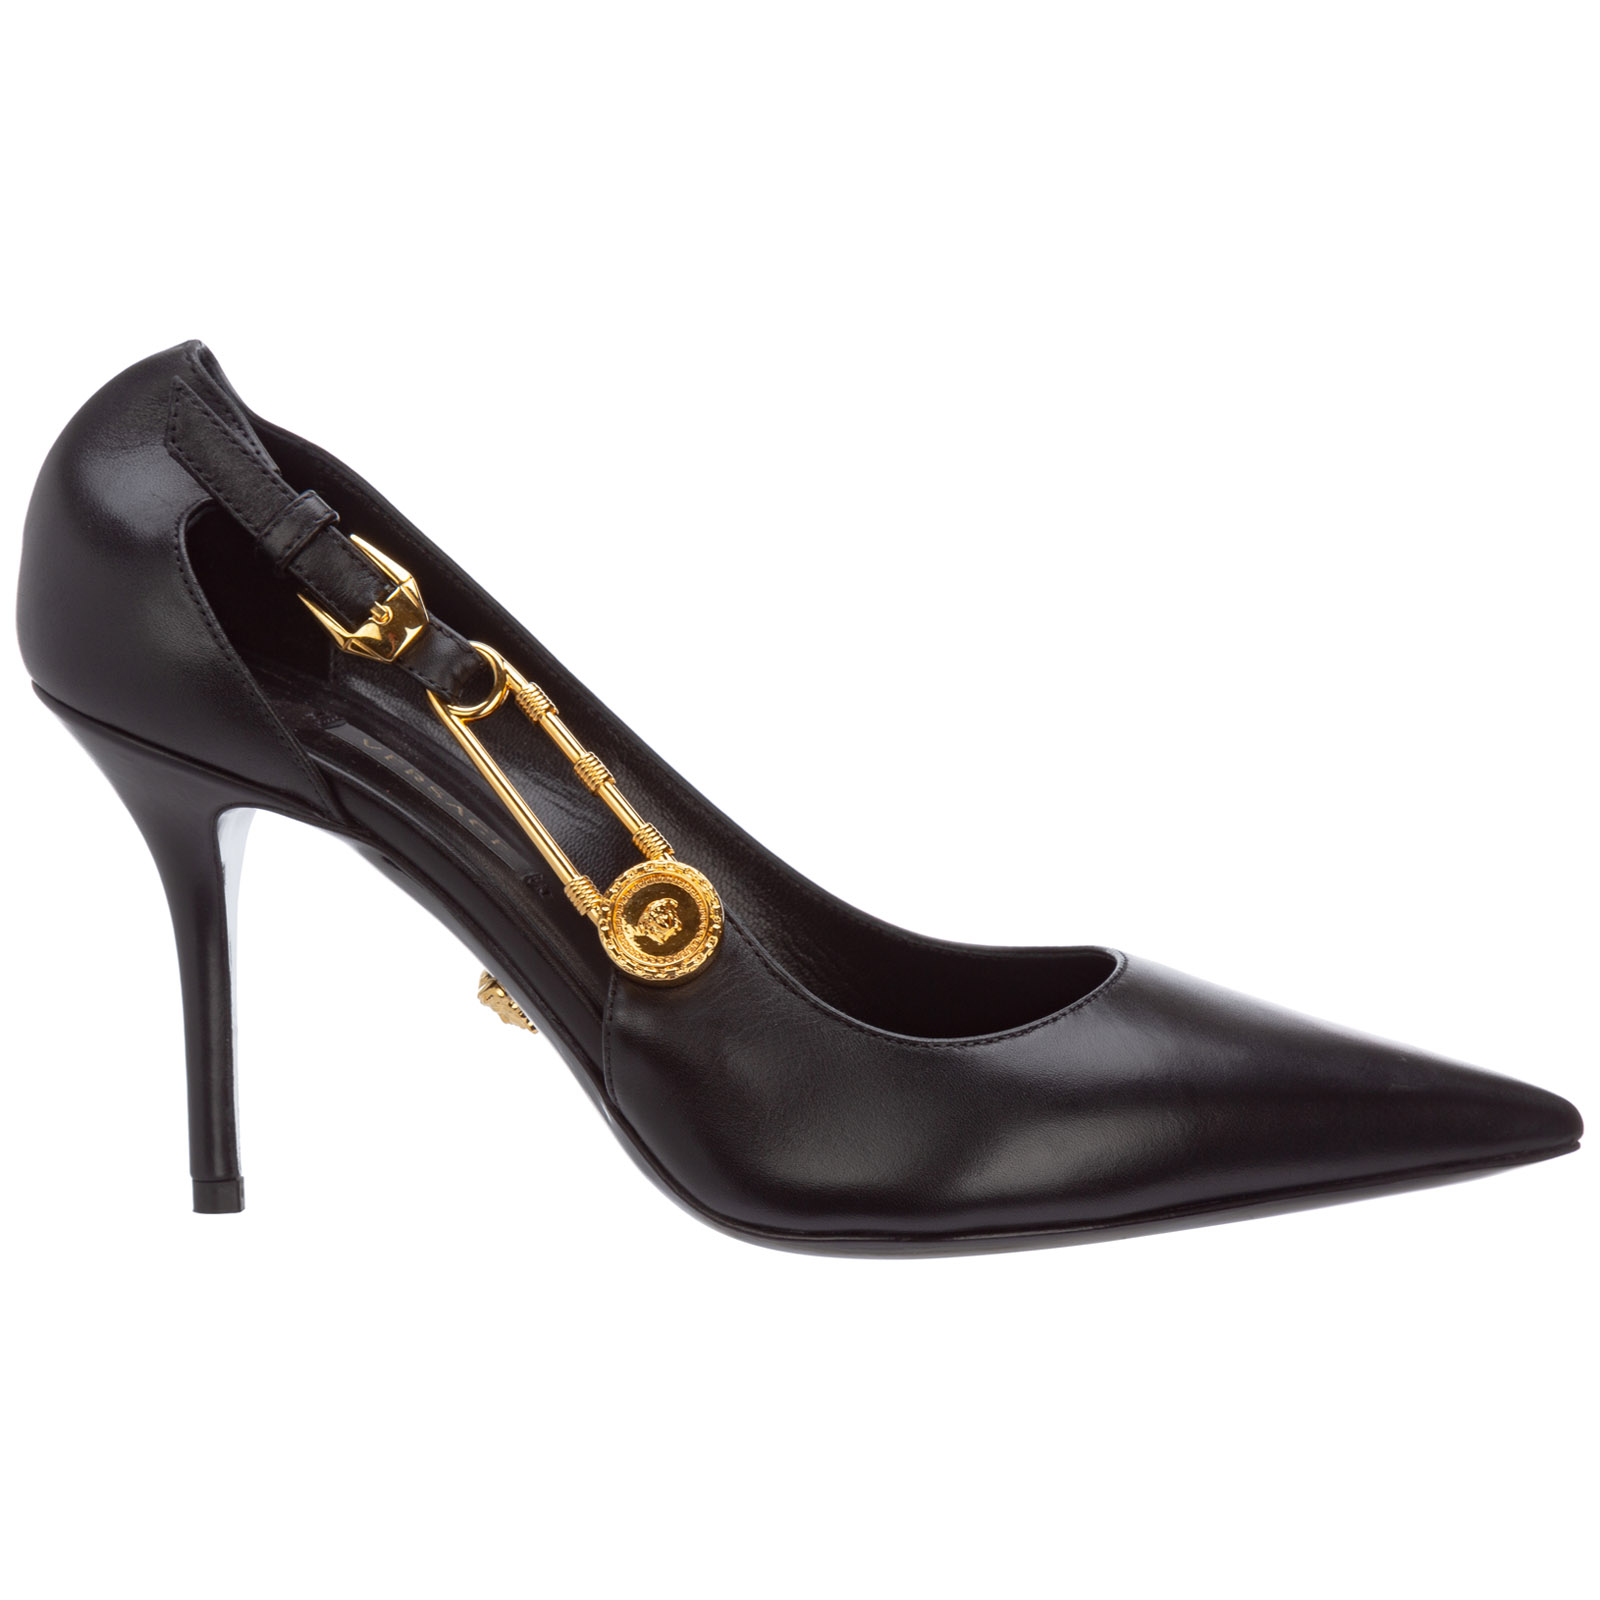 Versace Leathers WOMEN'S LEATHER PUMPS COURT SHOES HIGH HEEL SAFETY PIN